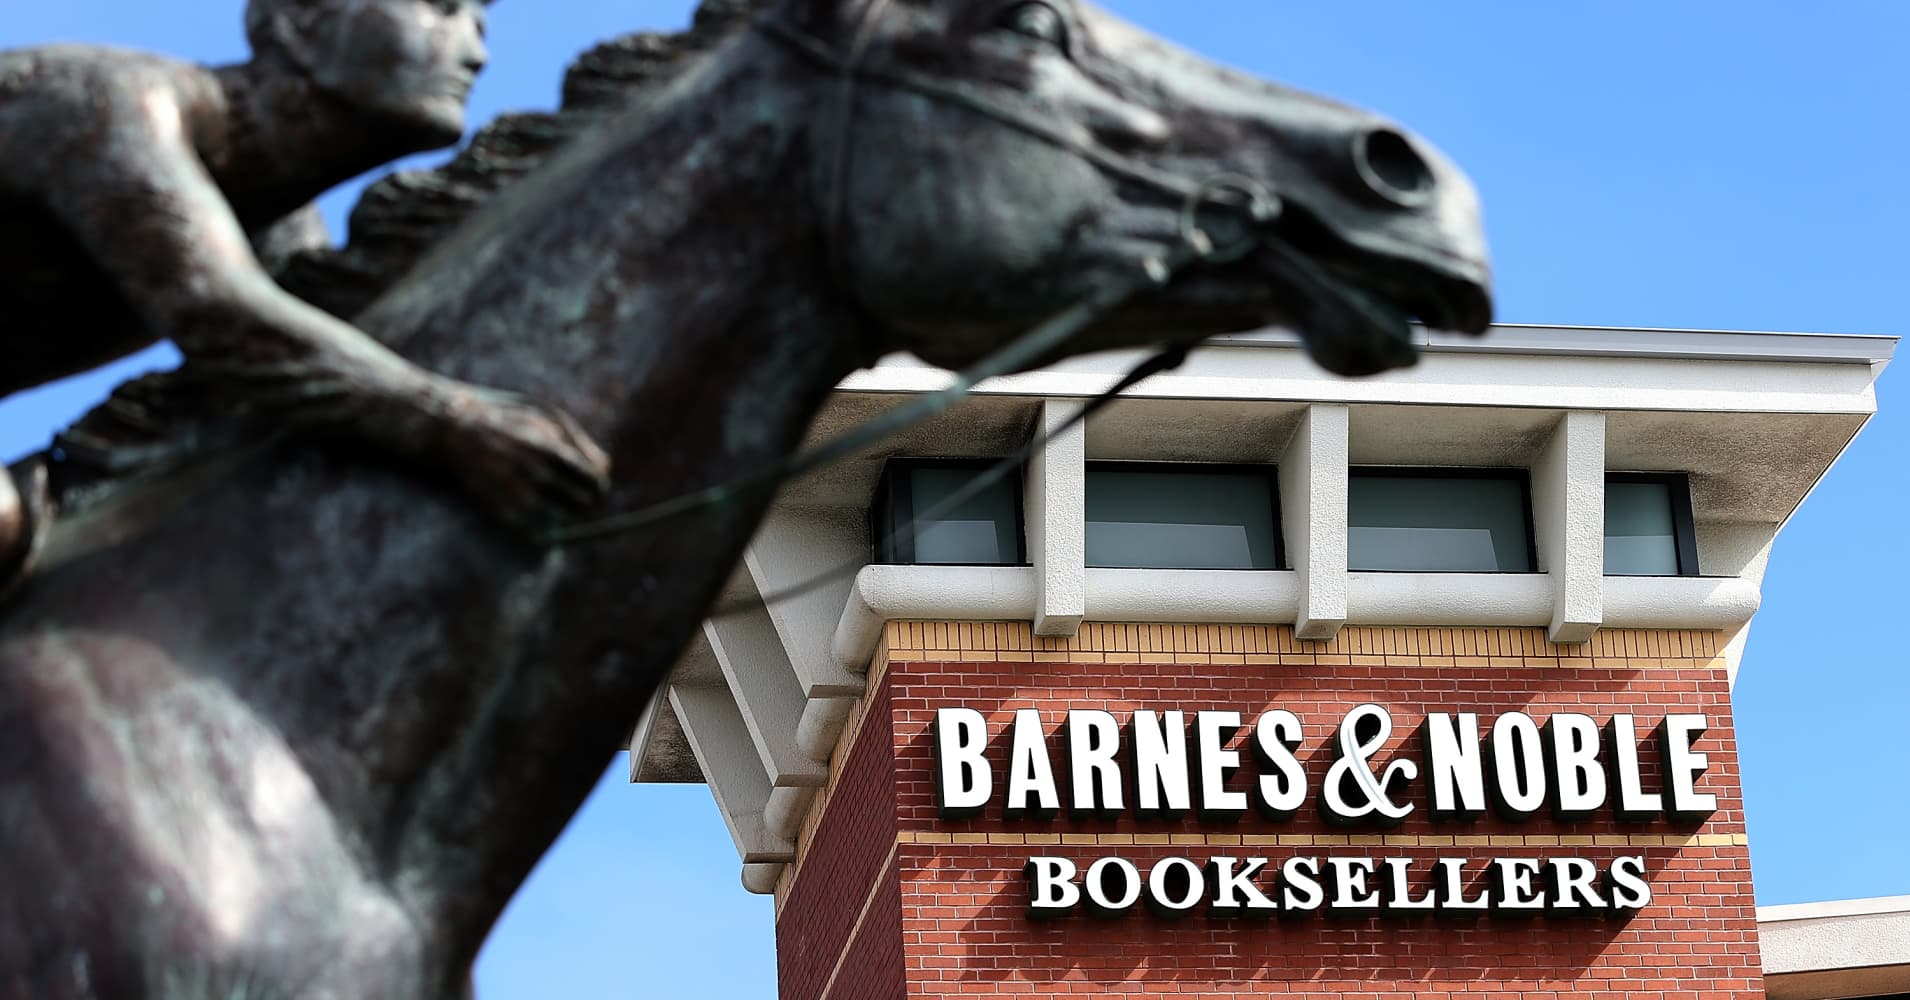 Barnes & Noble confirms job cuts, expects $40 million in cost savings